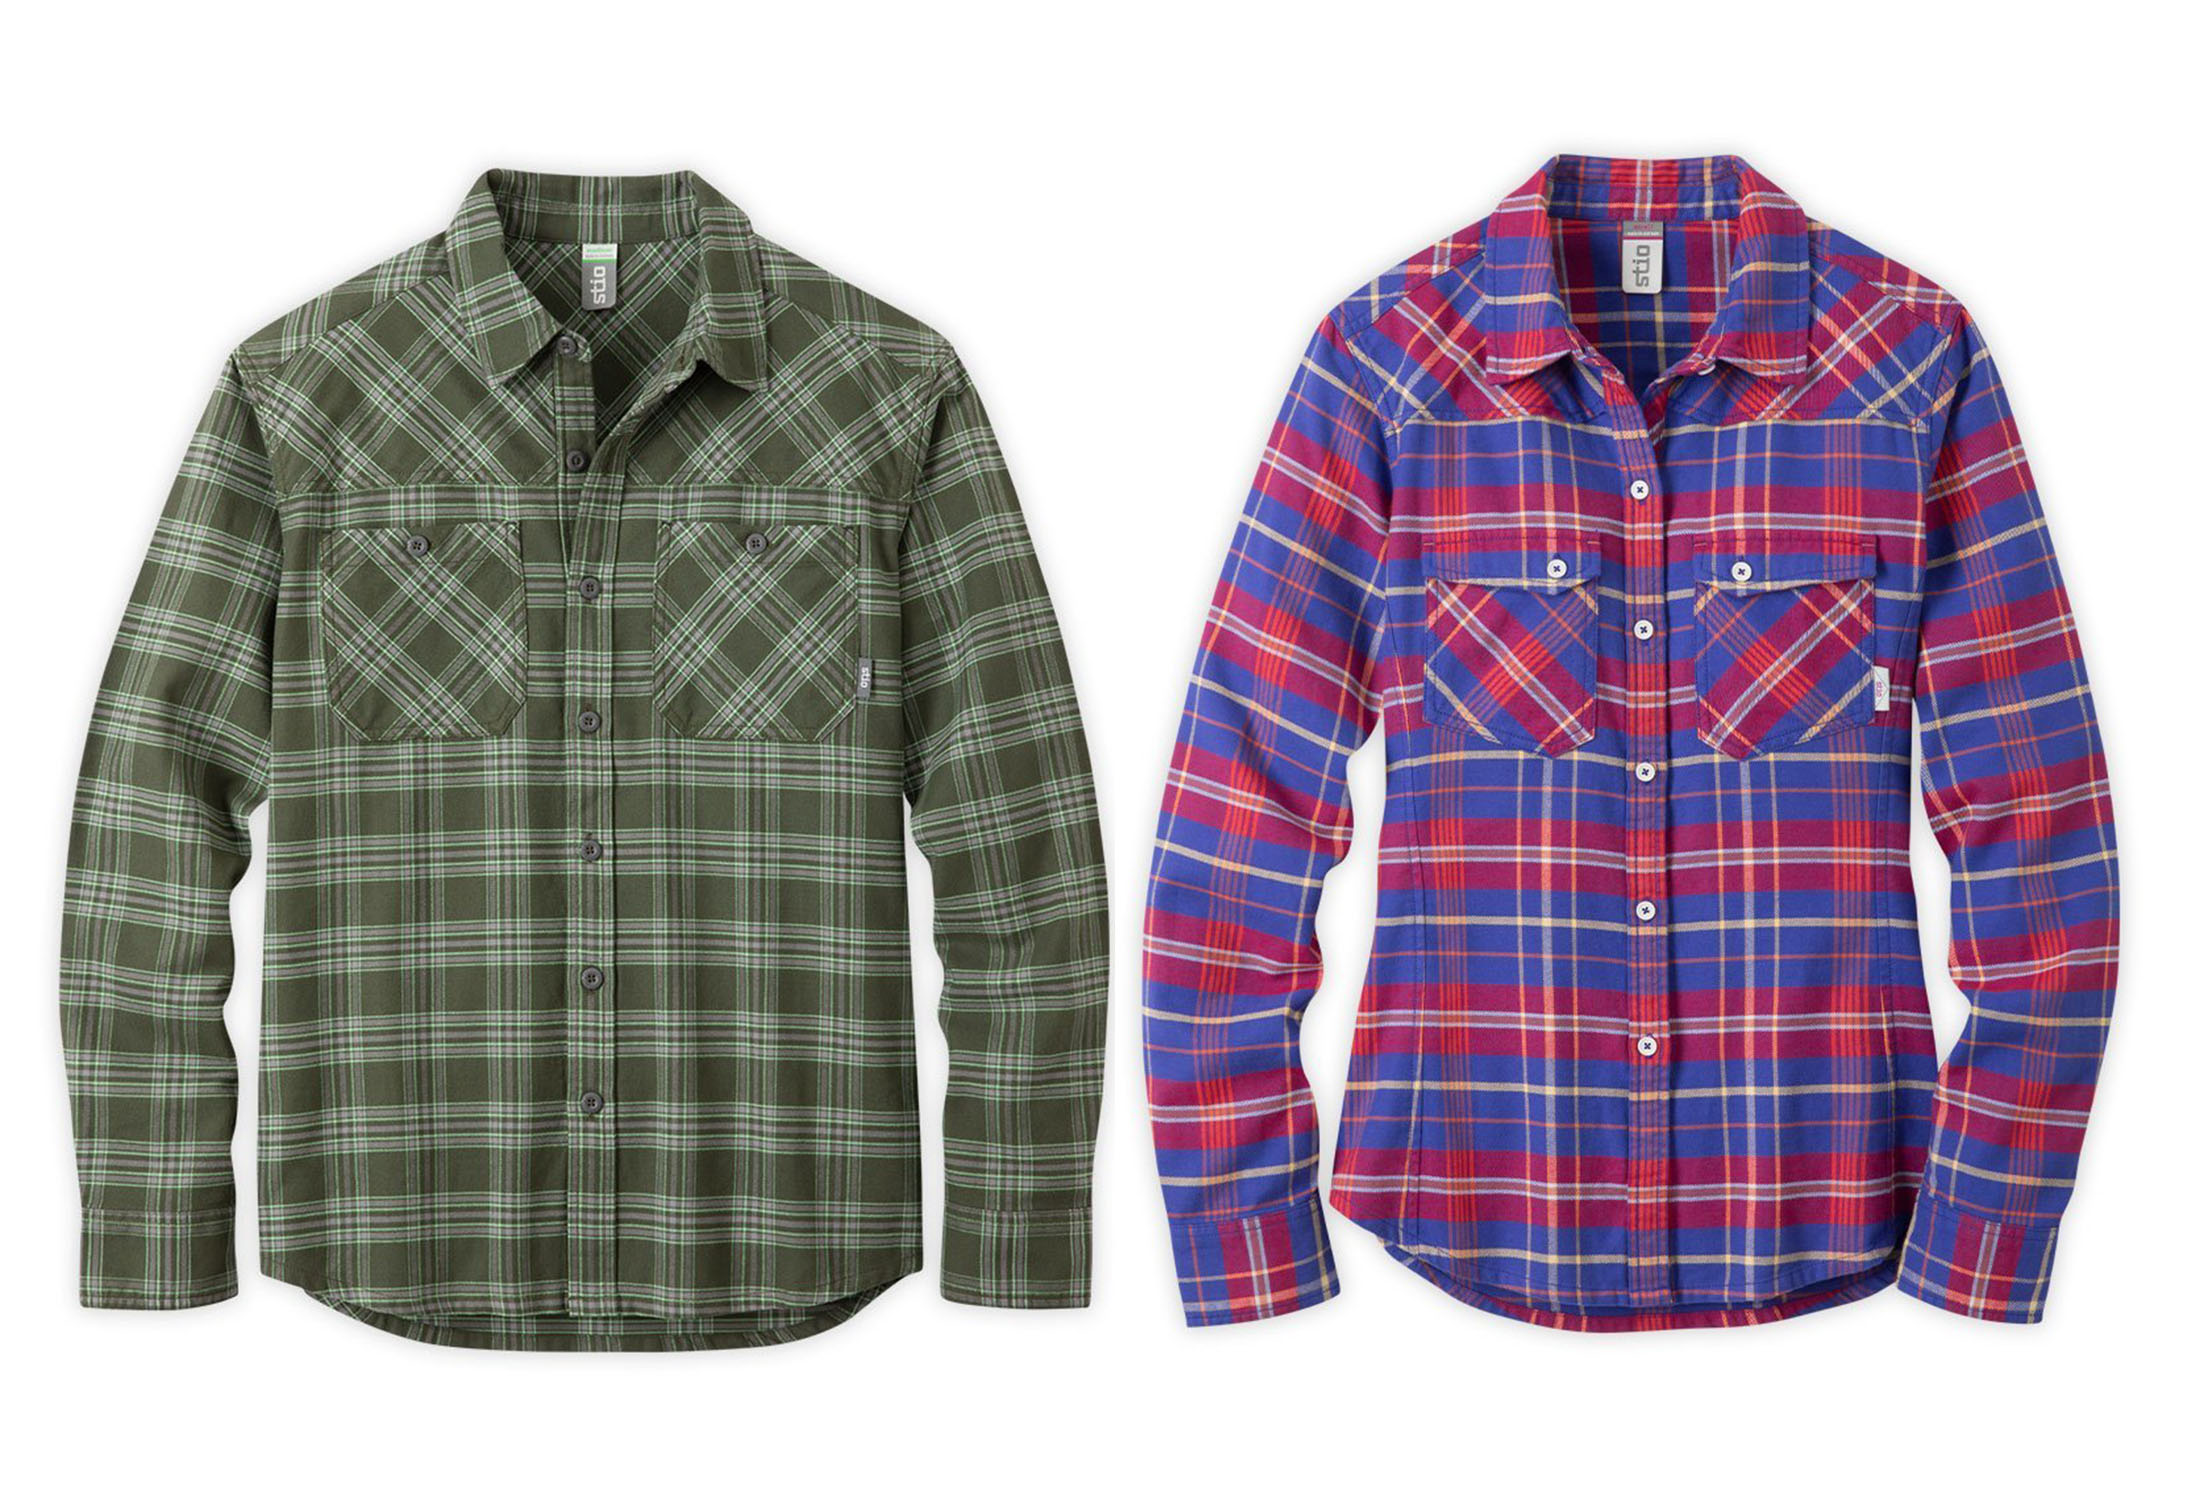 Stio flannels